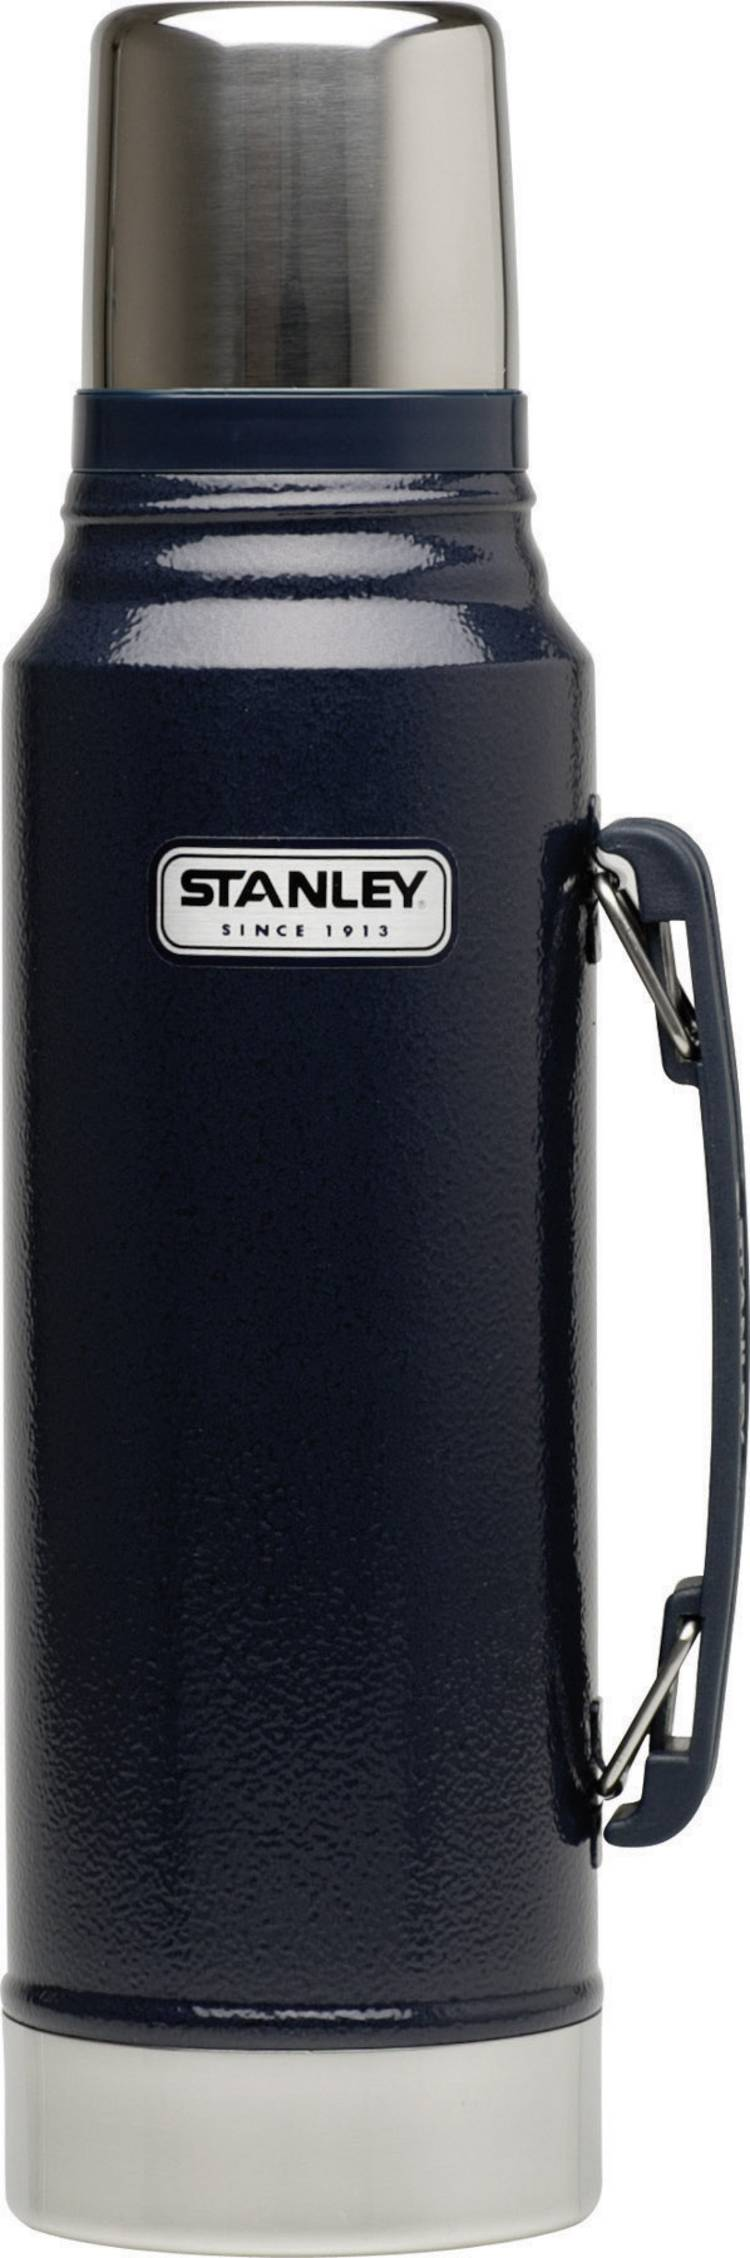 Stanley 10-01254-036 Thermosfles Donkerblauw 1000 ml